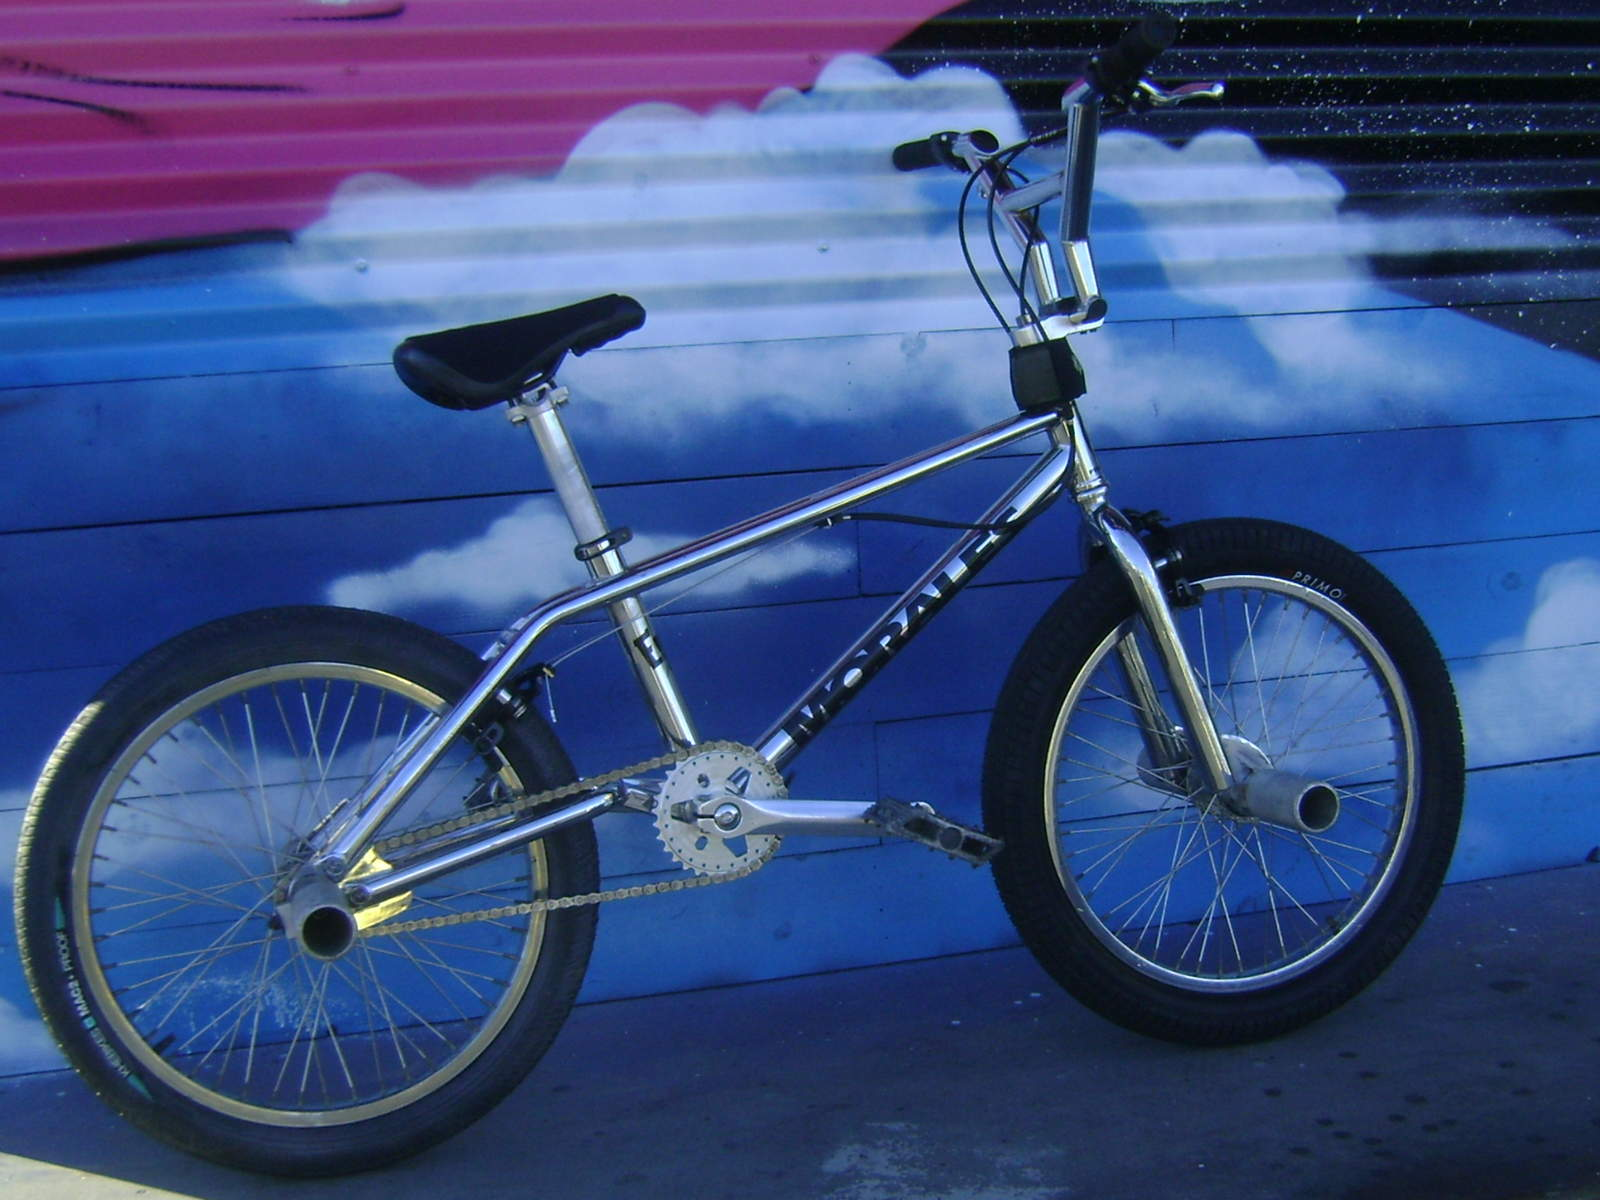 http://uploads.bmxmuseum.com/user-images/6905/dsc000815c17287736.jpg